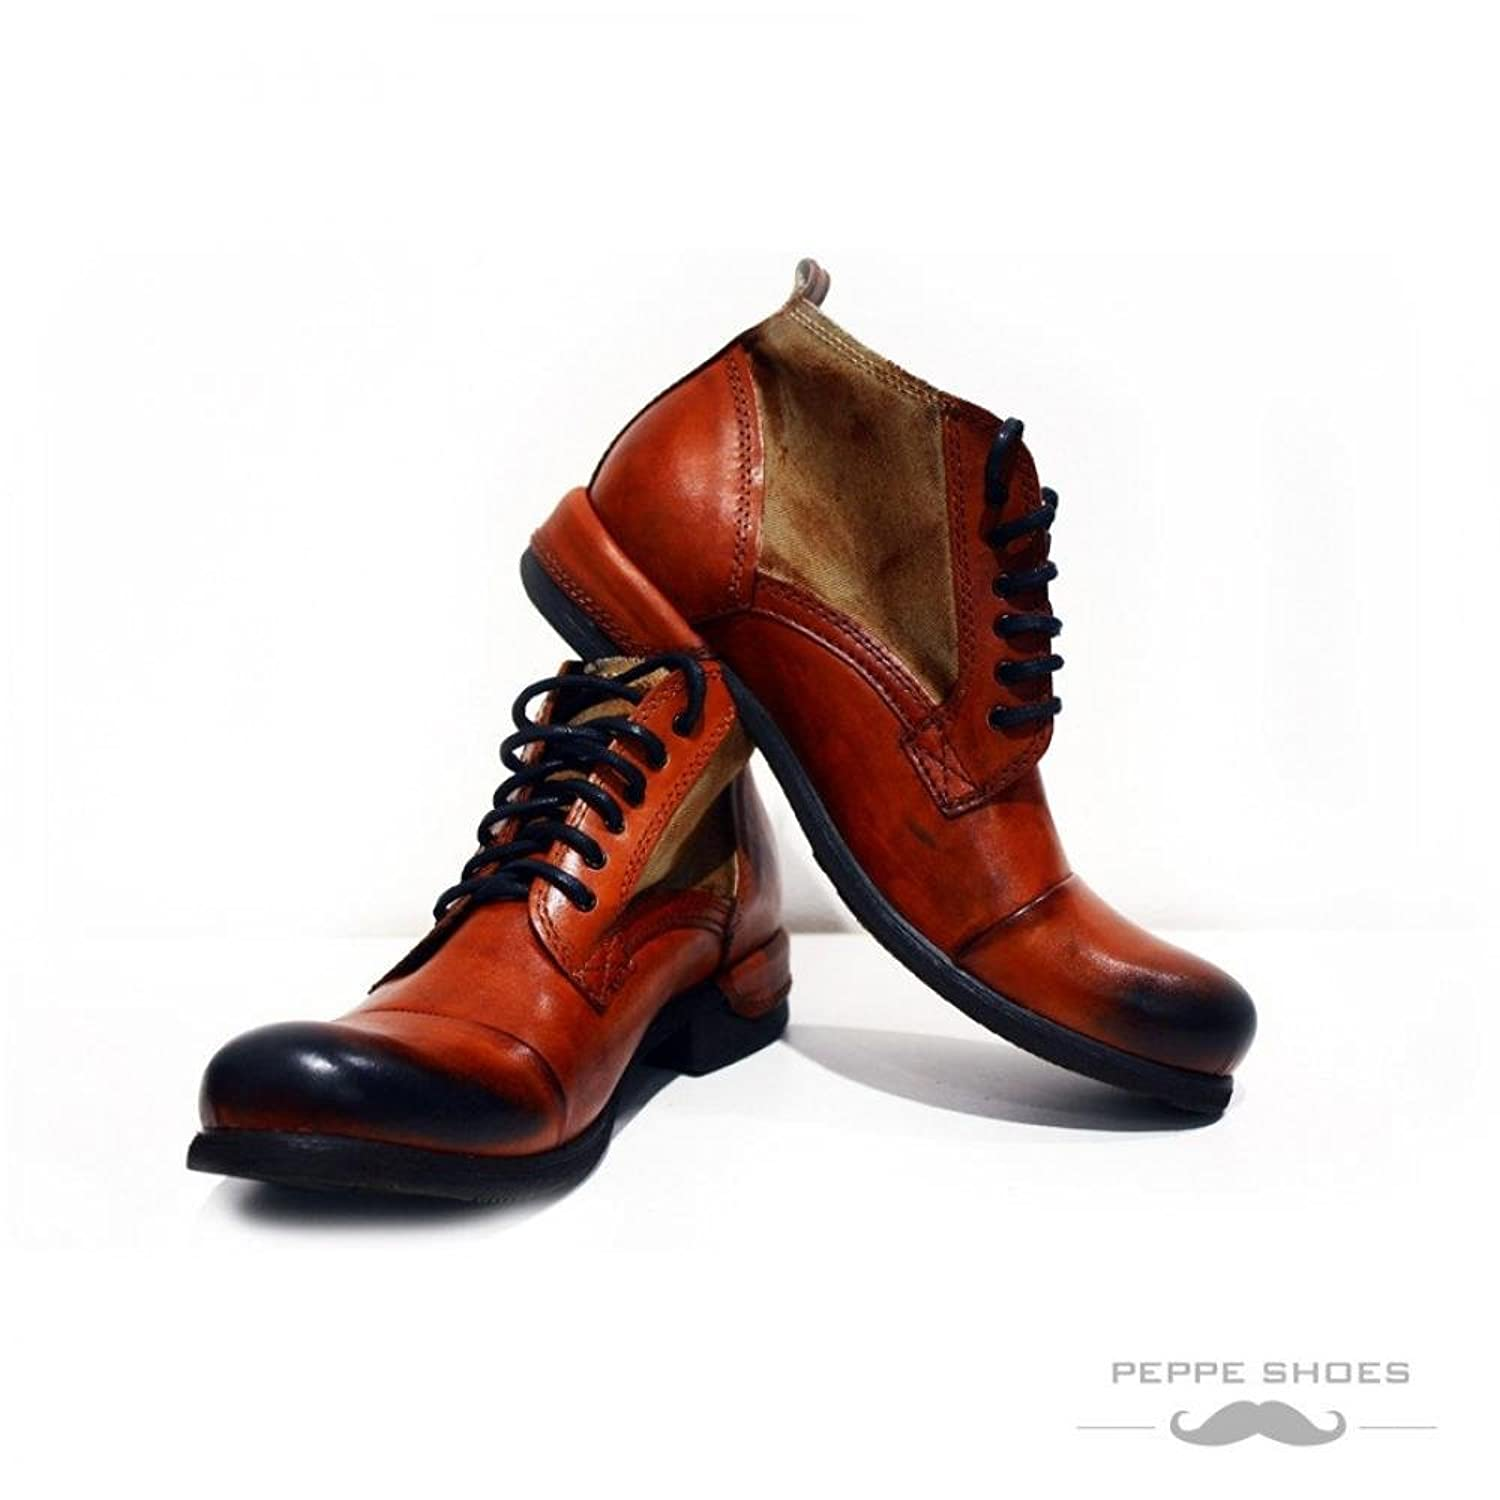 Modello Genua - Handmade Colorful Italian Leather Unique High Boots Lace Up Men's Shoes